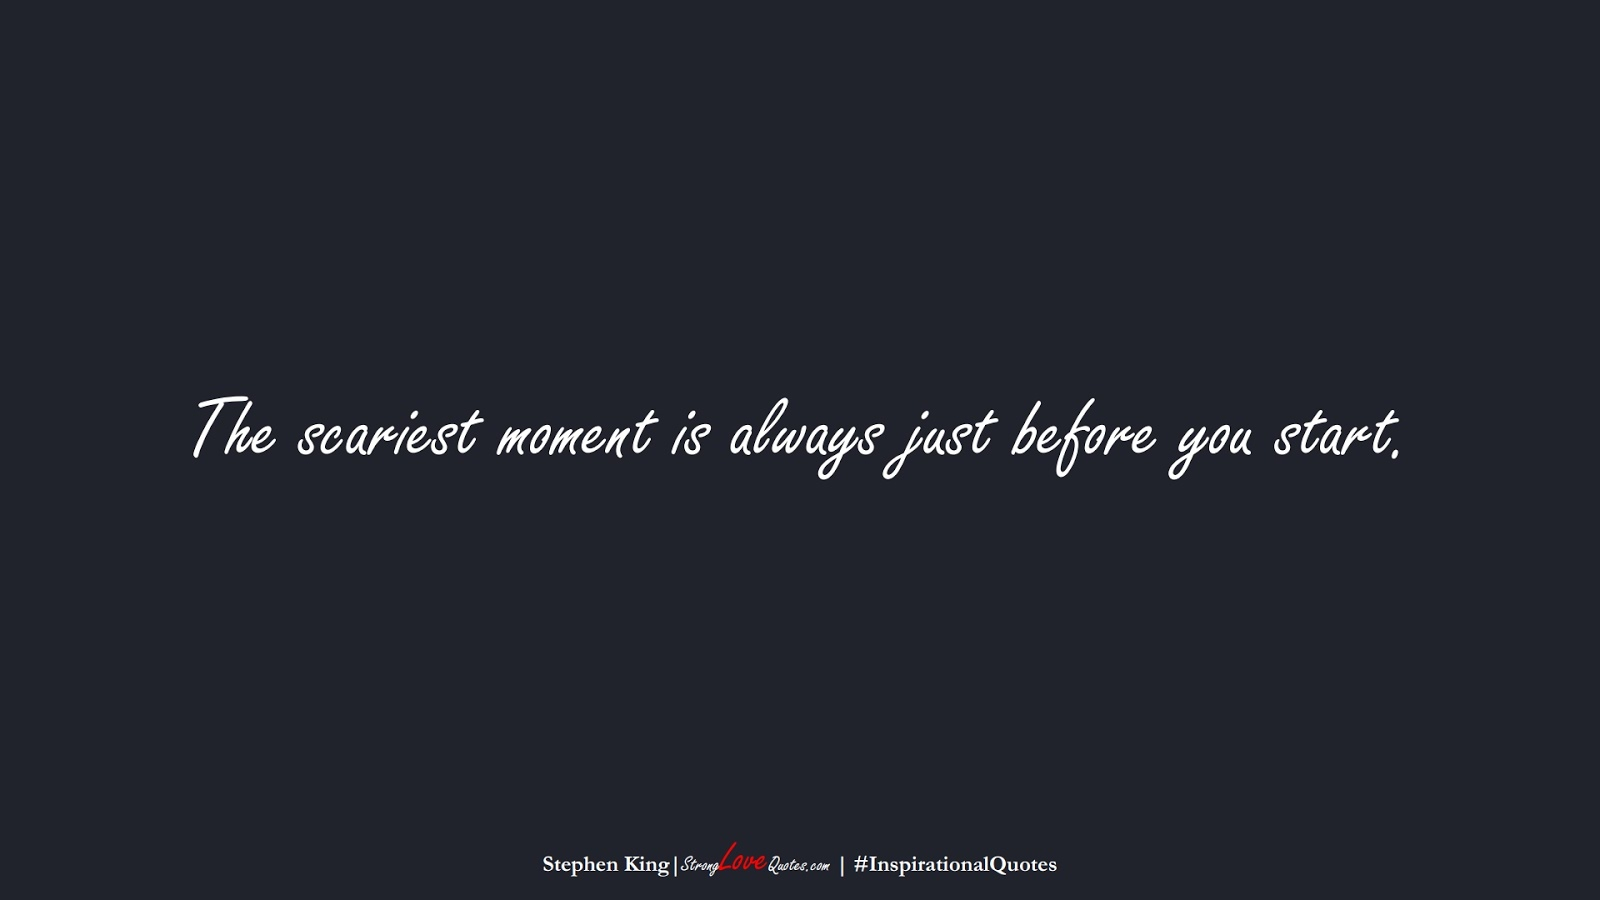 The scariest moment is always just before you start. (Stephen King);  #InspirationalQuotes